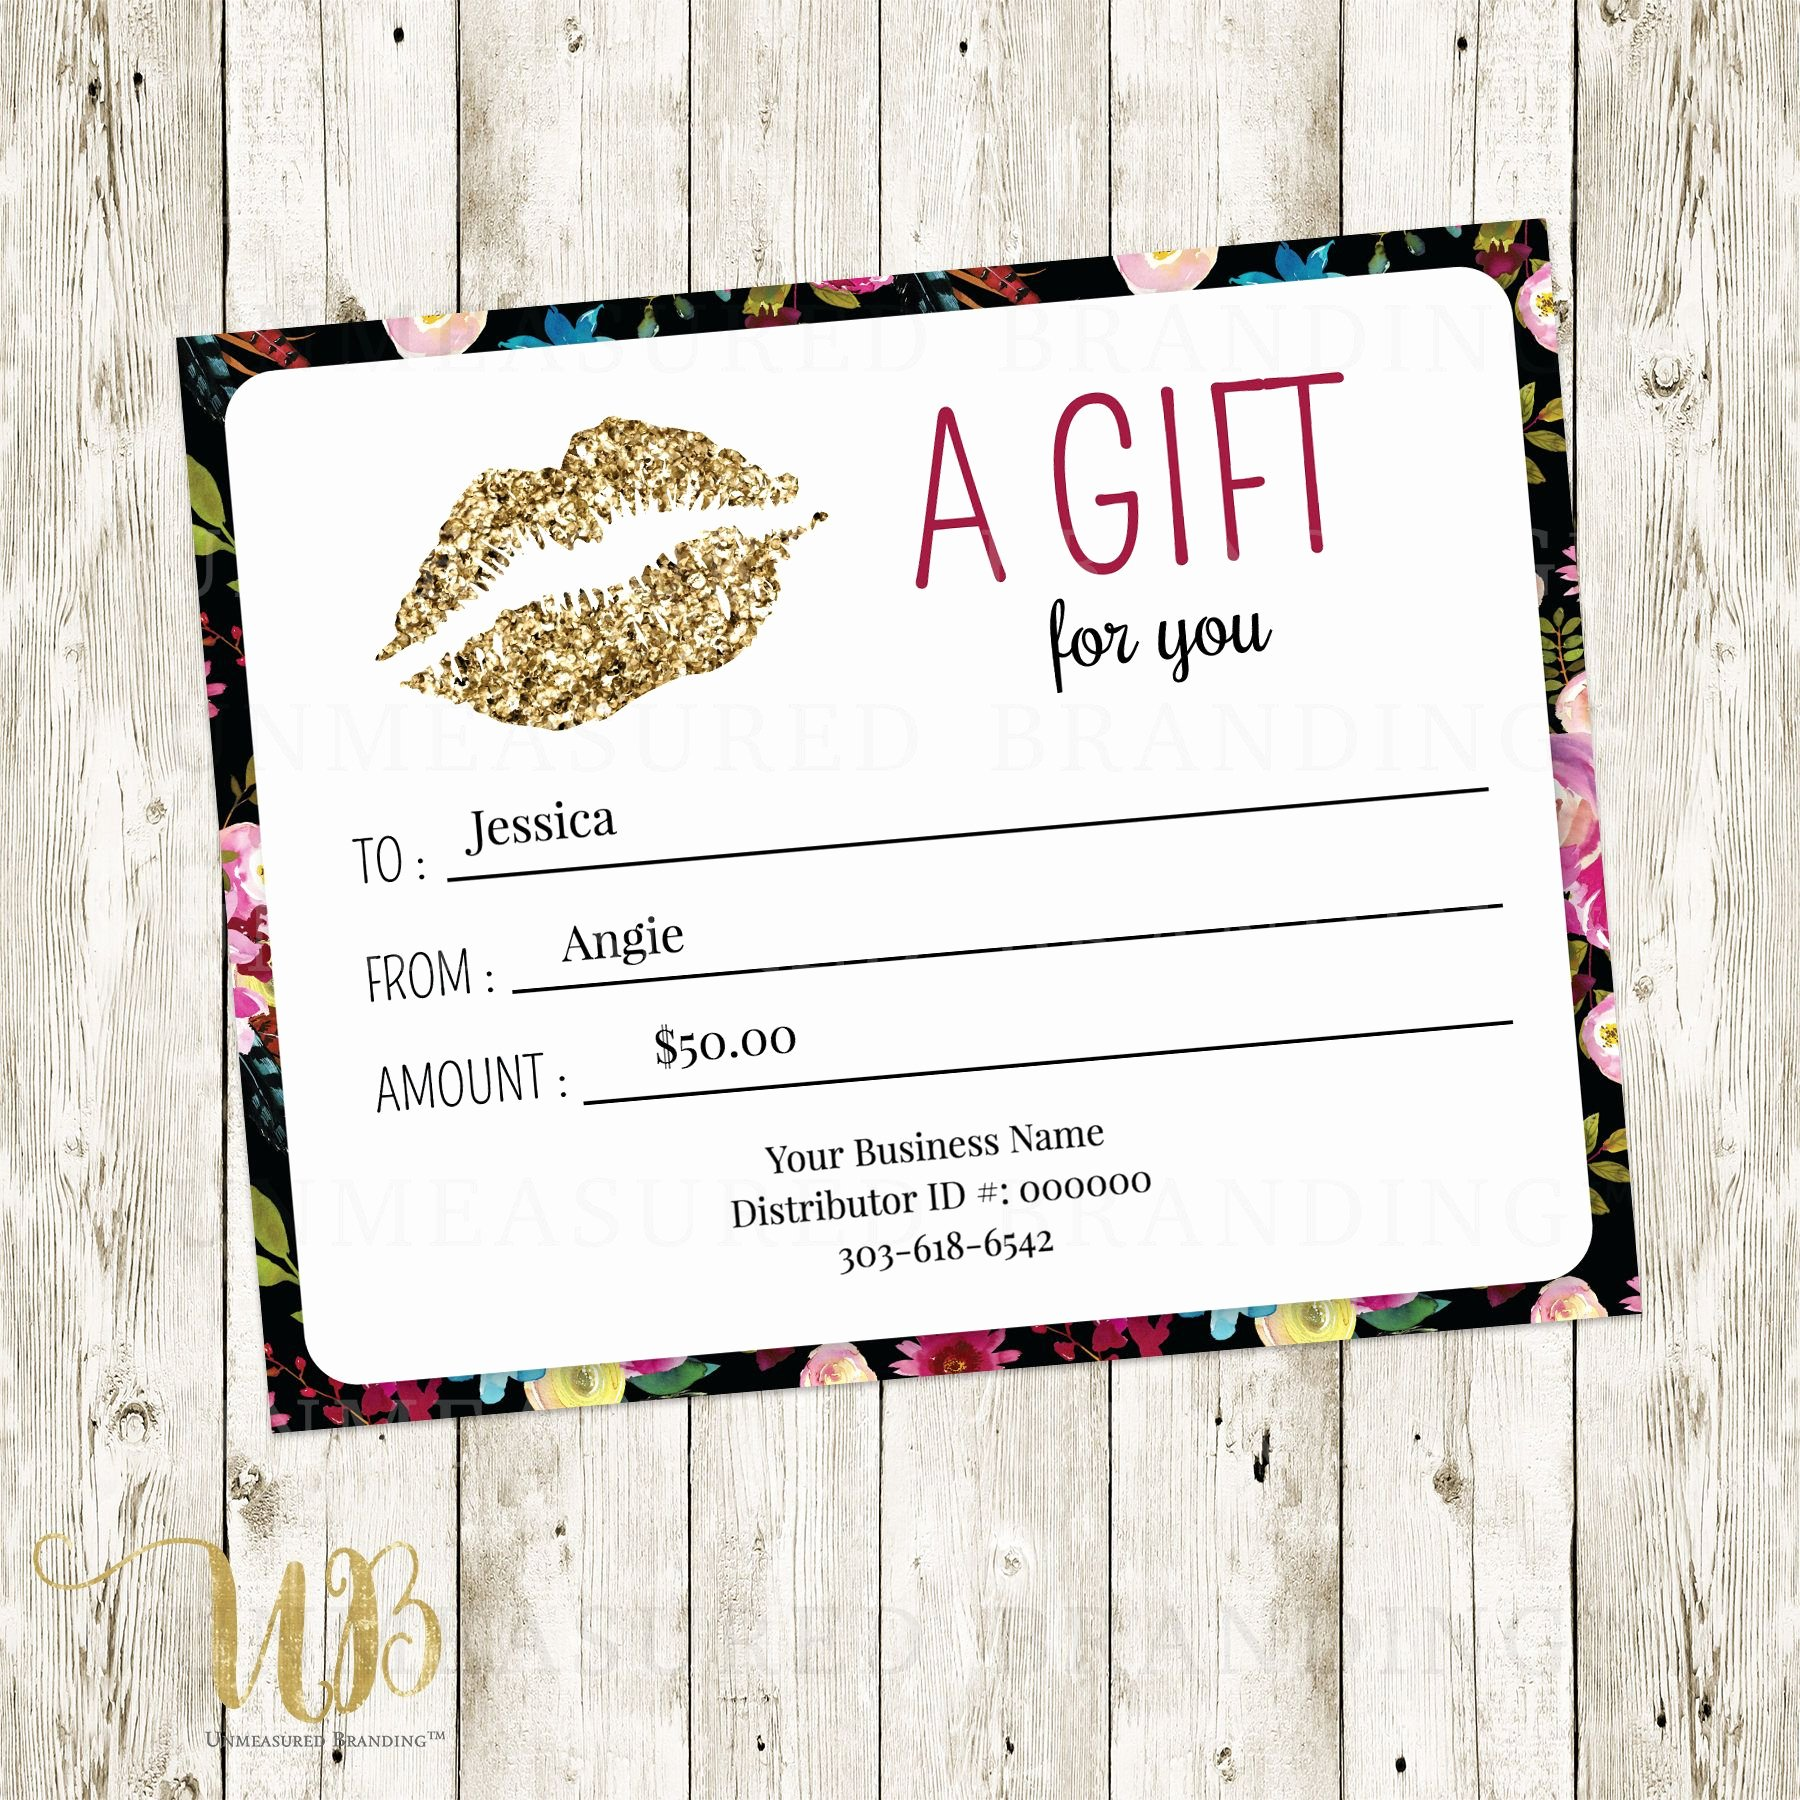 Lipsense Gift Certificate Template Awesome Lipsense Gift Certificate Template Free